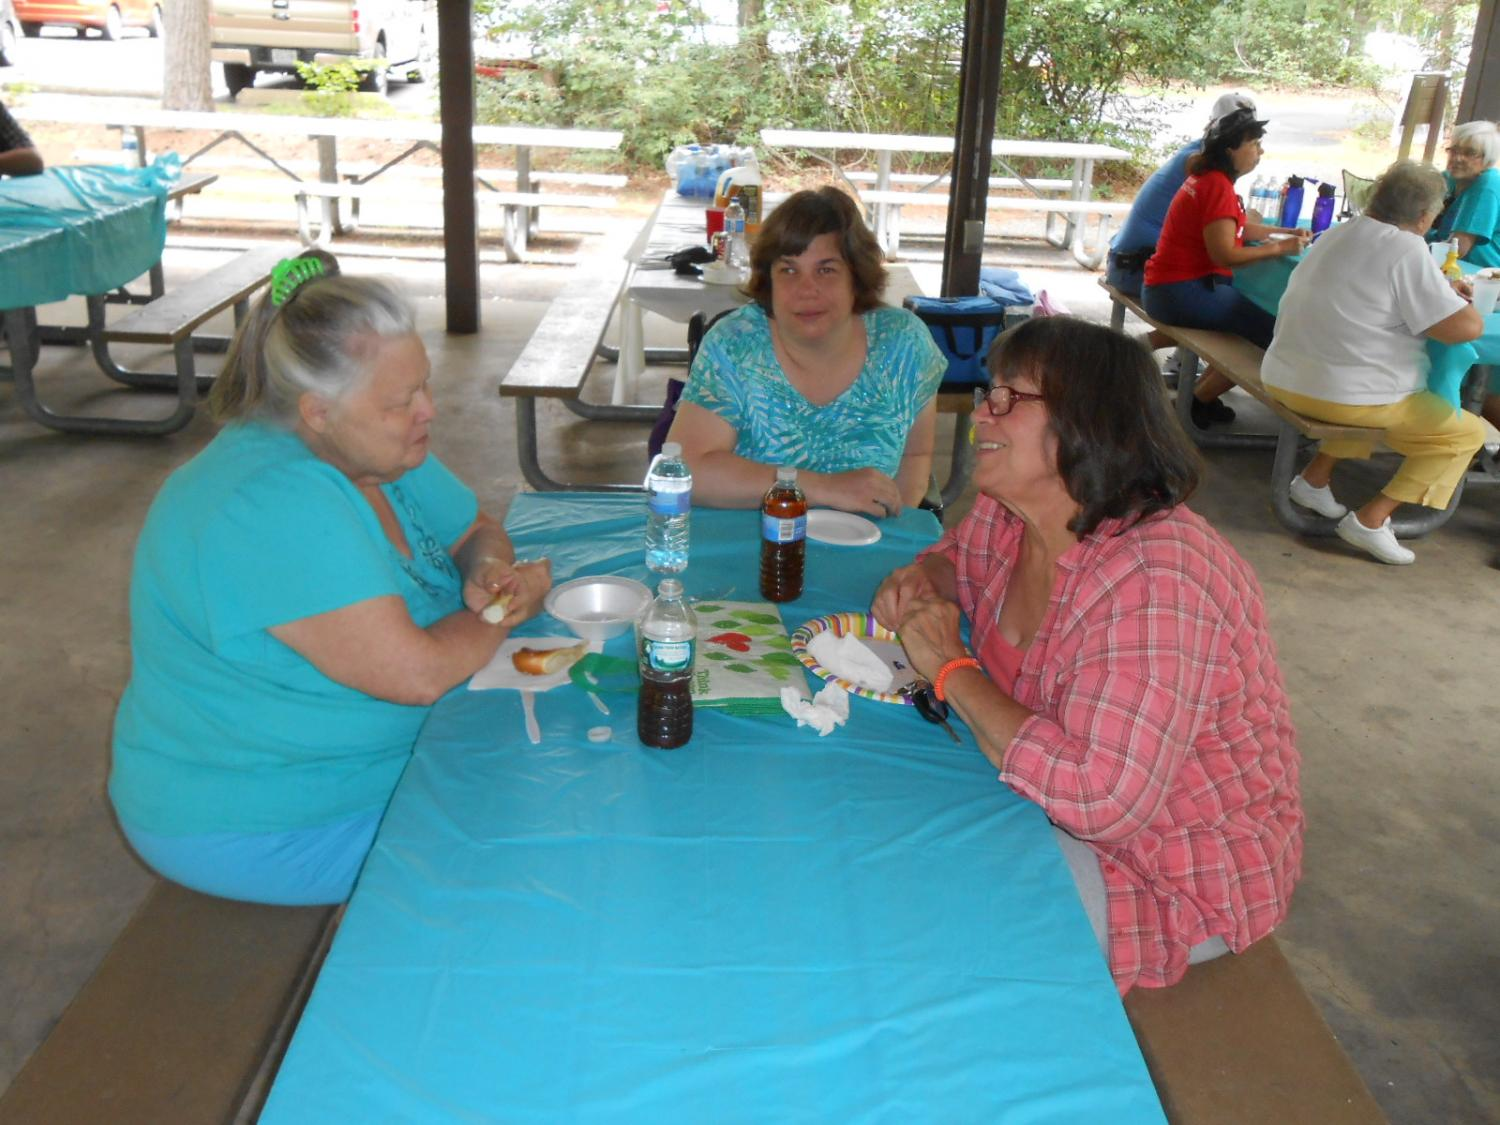 Combined Church Picnic - August 8, 2015 at Belleplain State Park